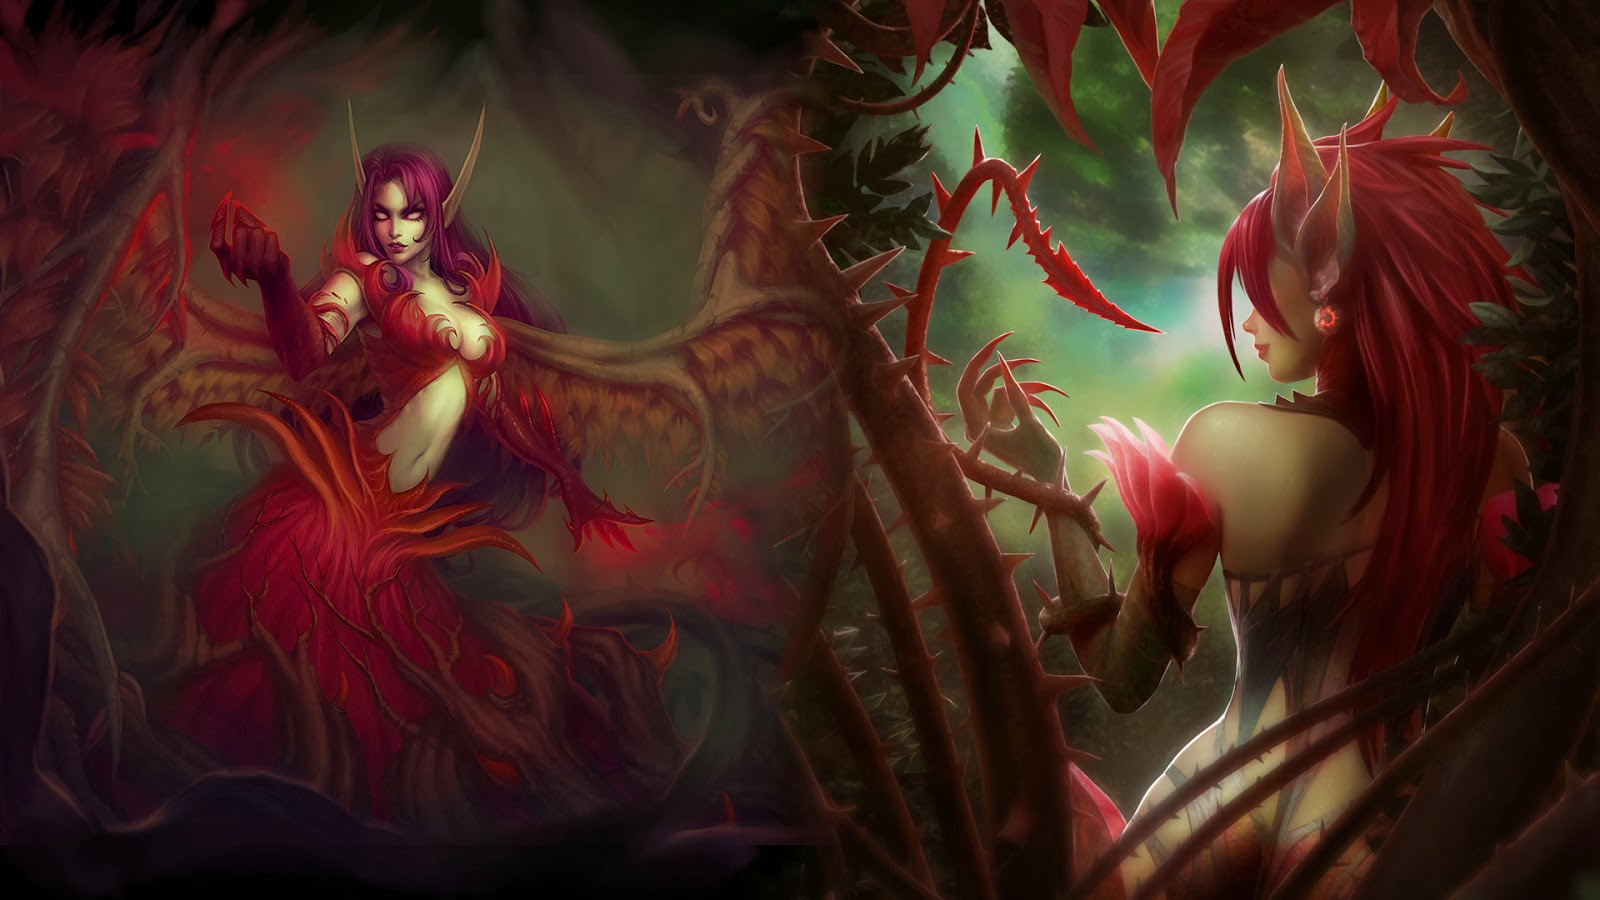 Morgana League of Legends Wallpaper, Morgana Desktop Wallpaper